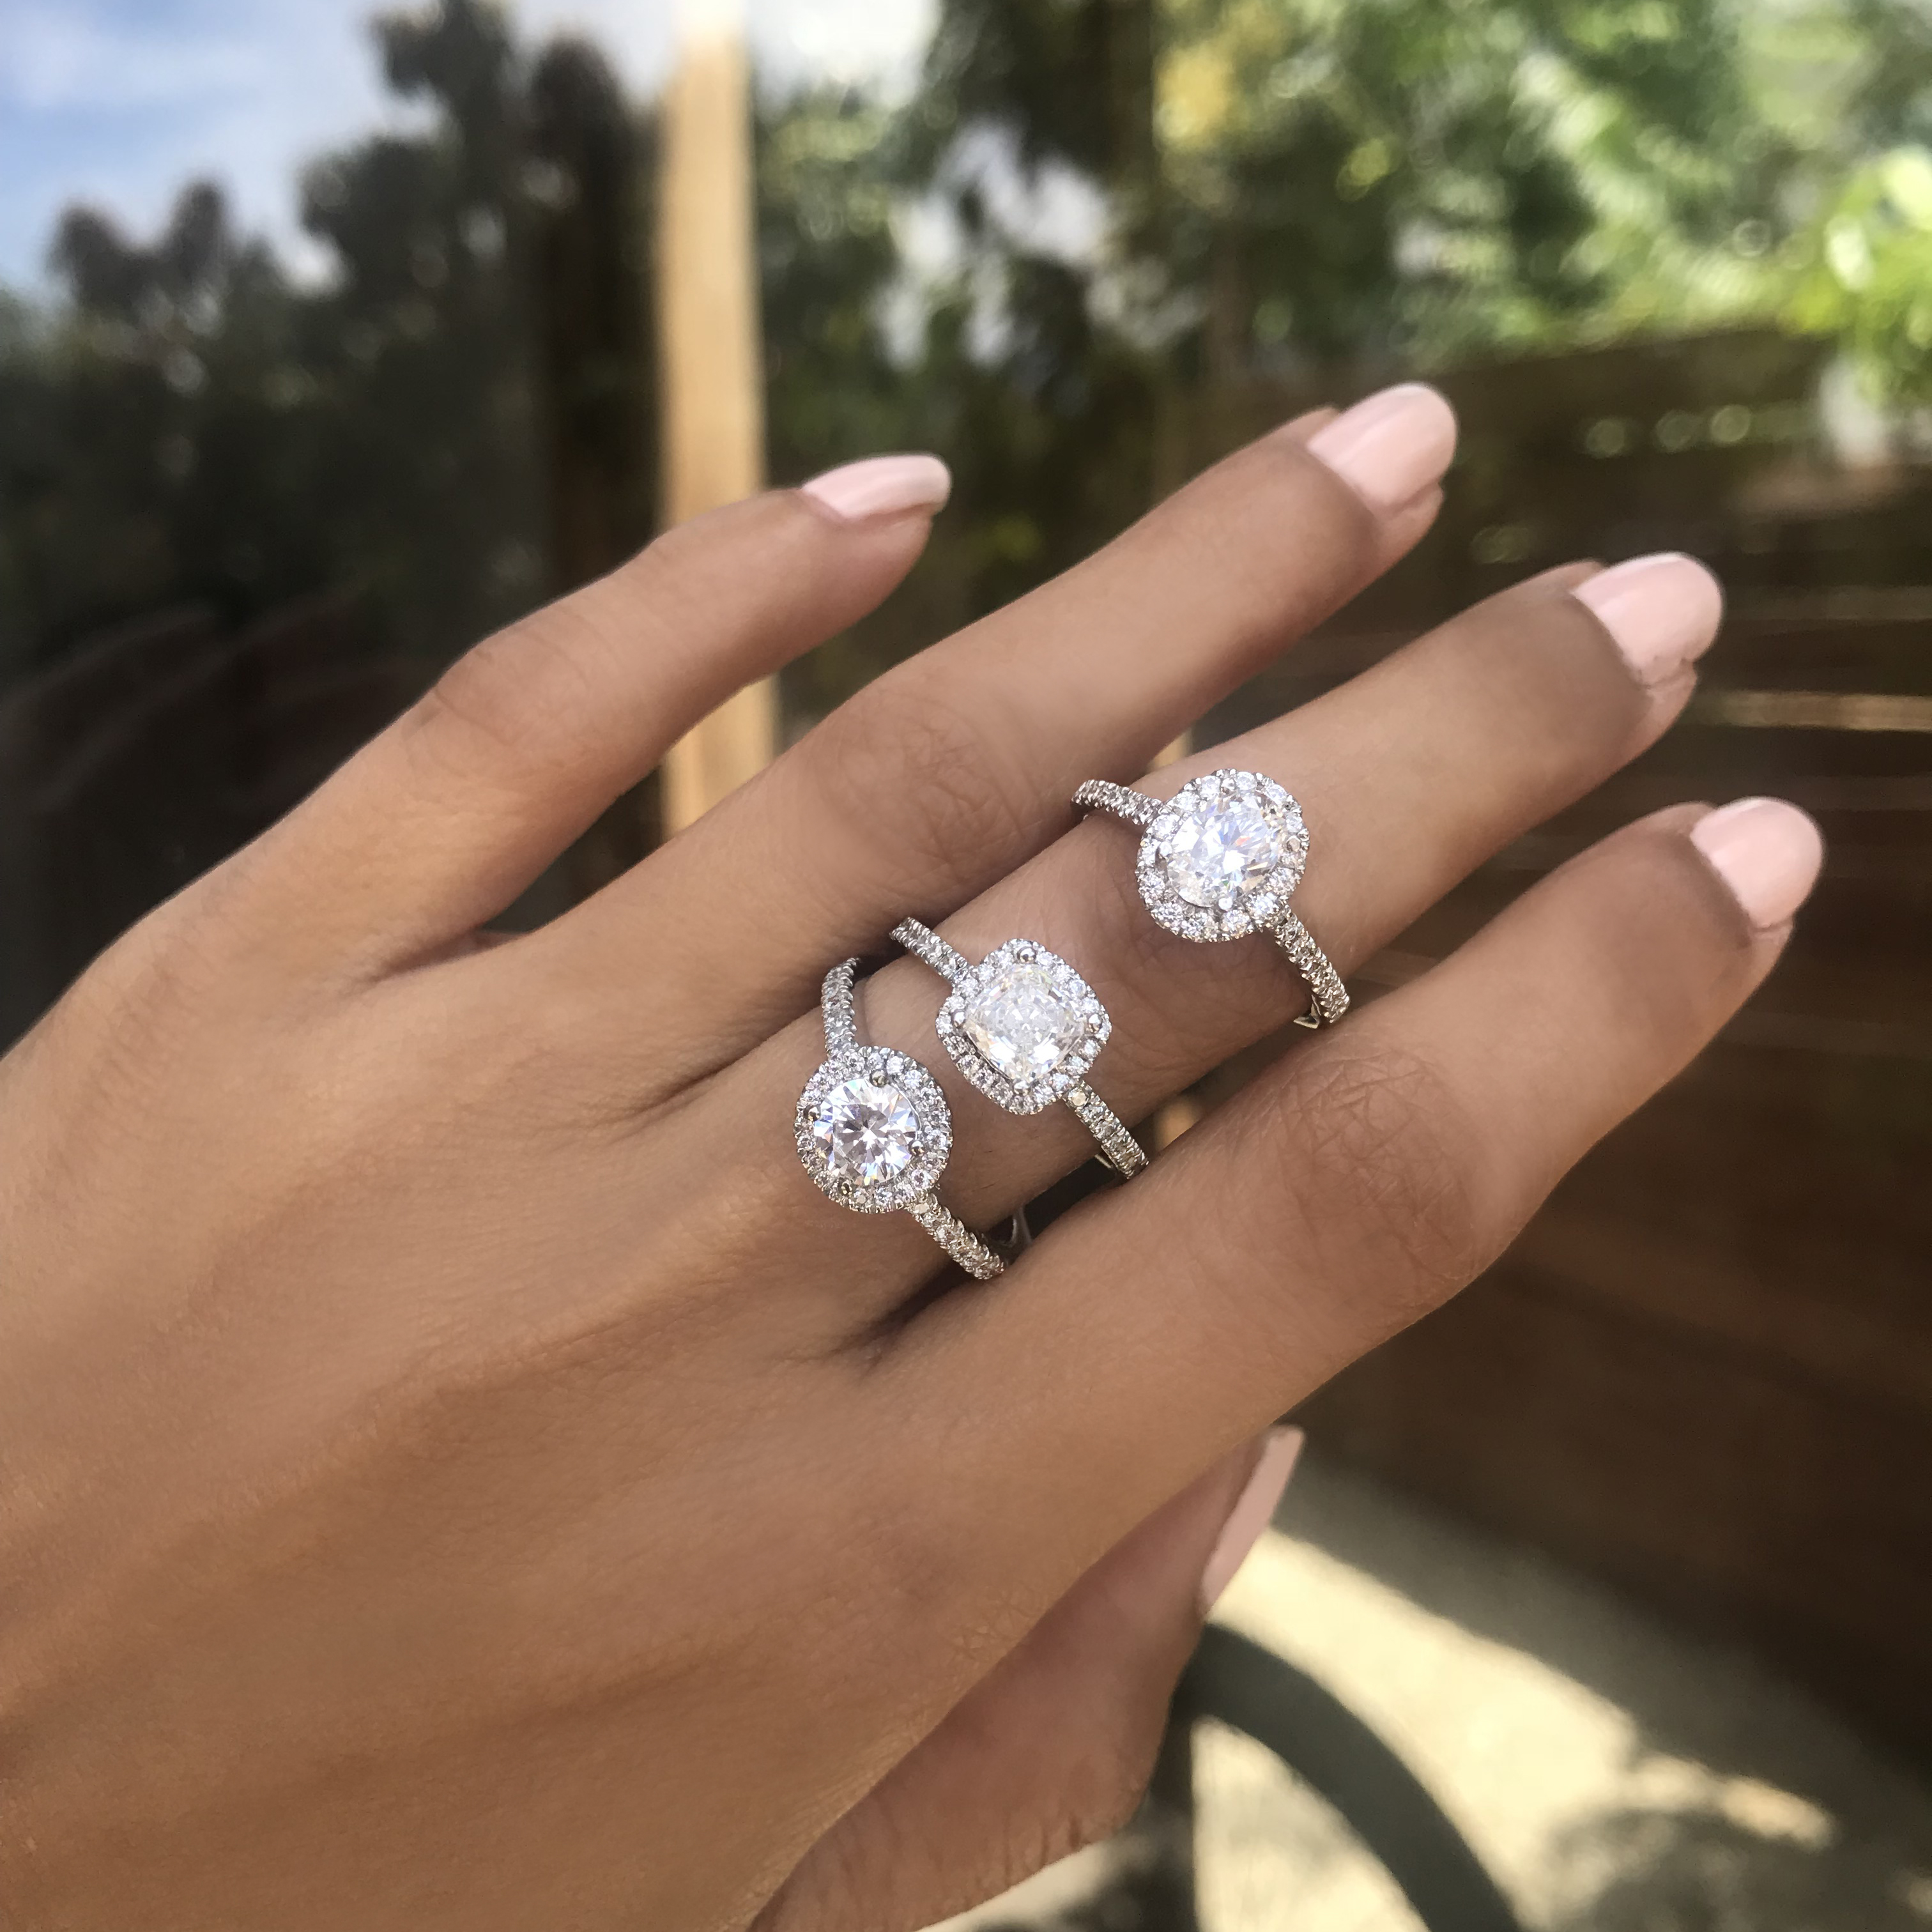 Engagement Rings 101: Settings & Styles